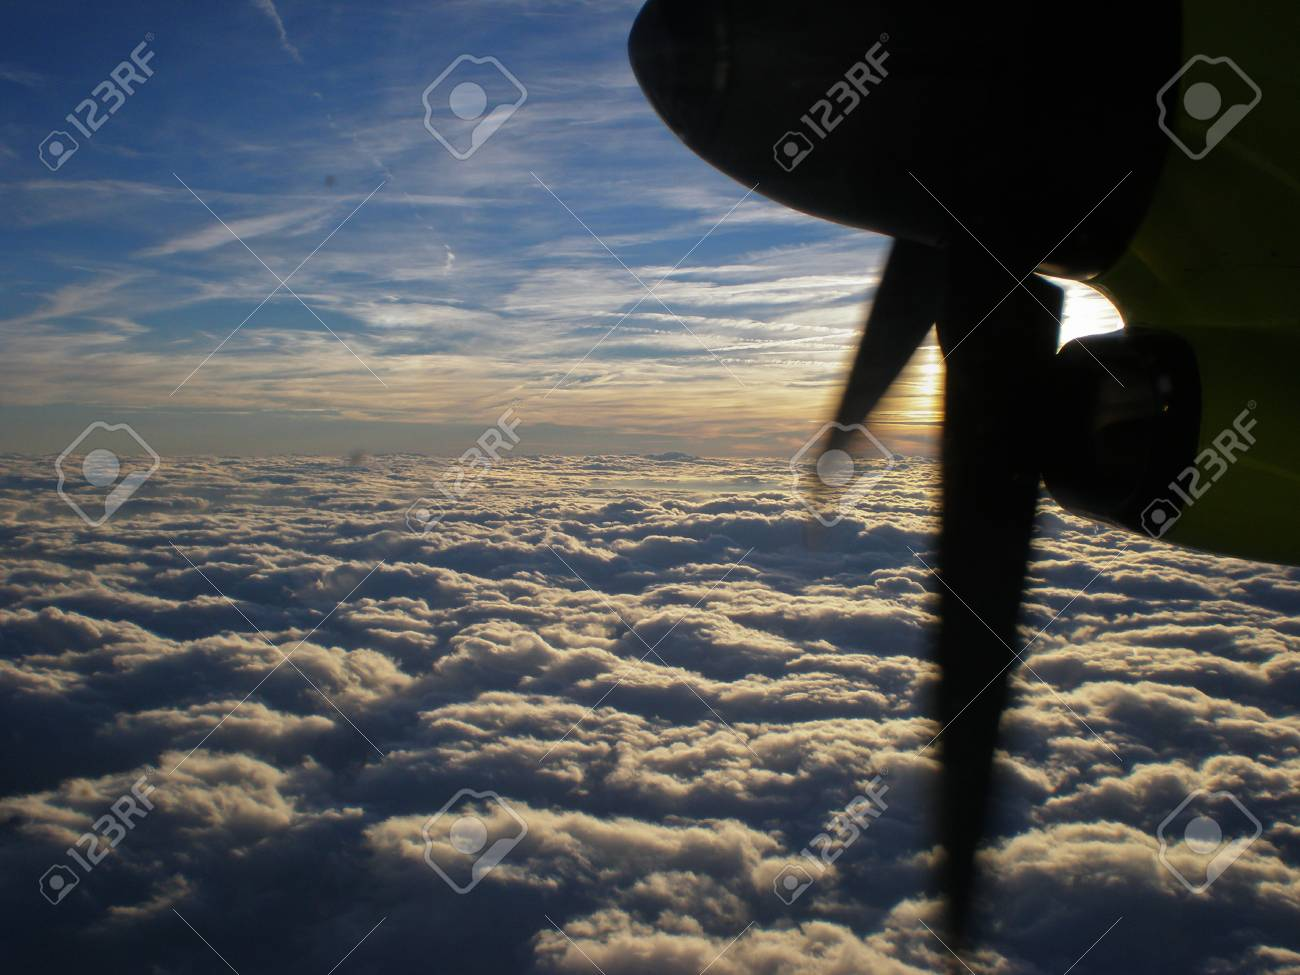 Looking Out Of A Airplane Window Above The Clouds Stock Photo